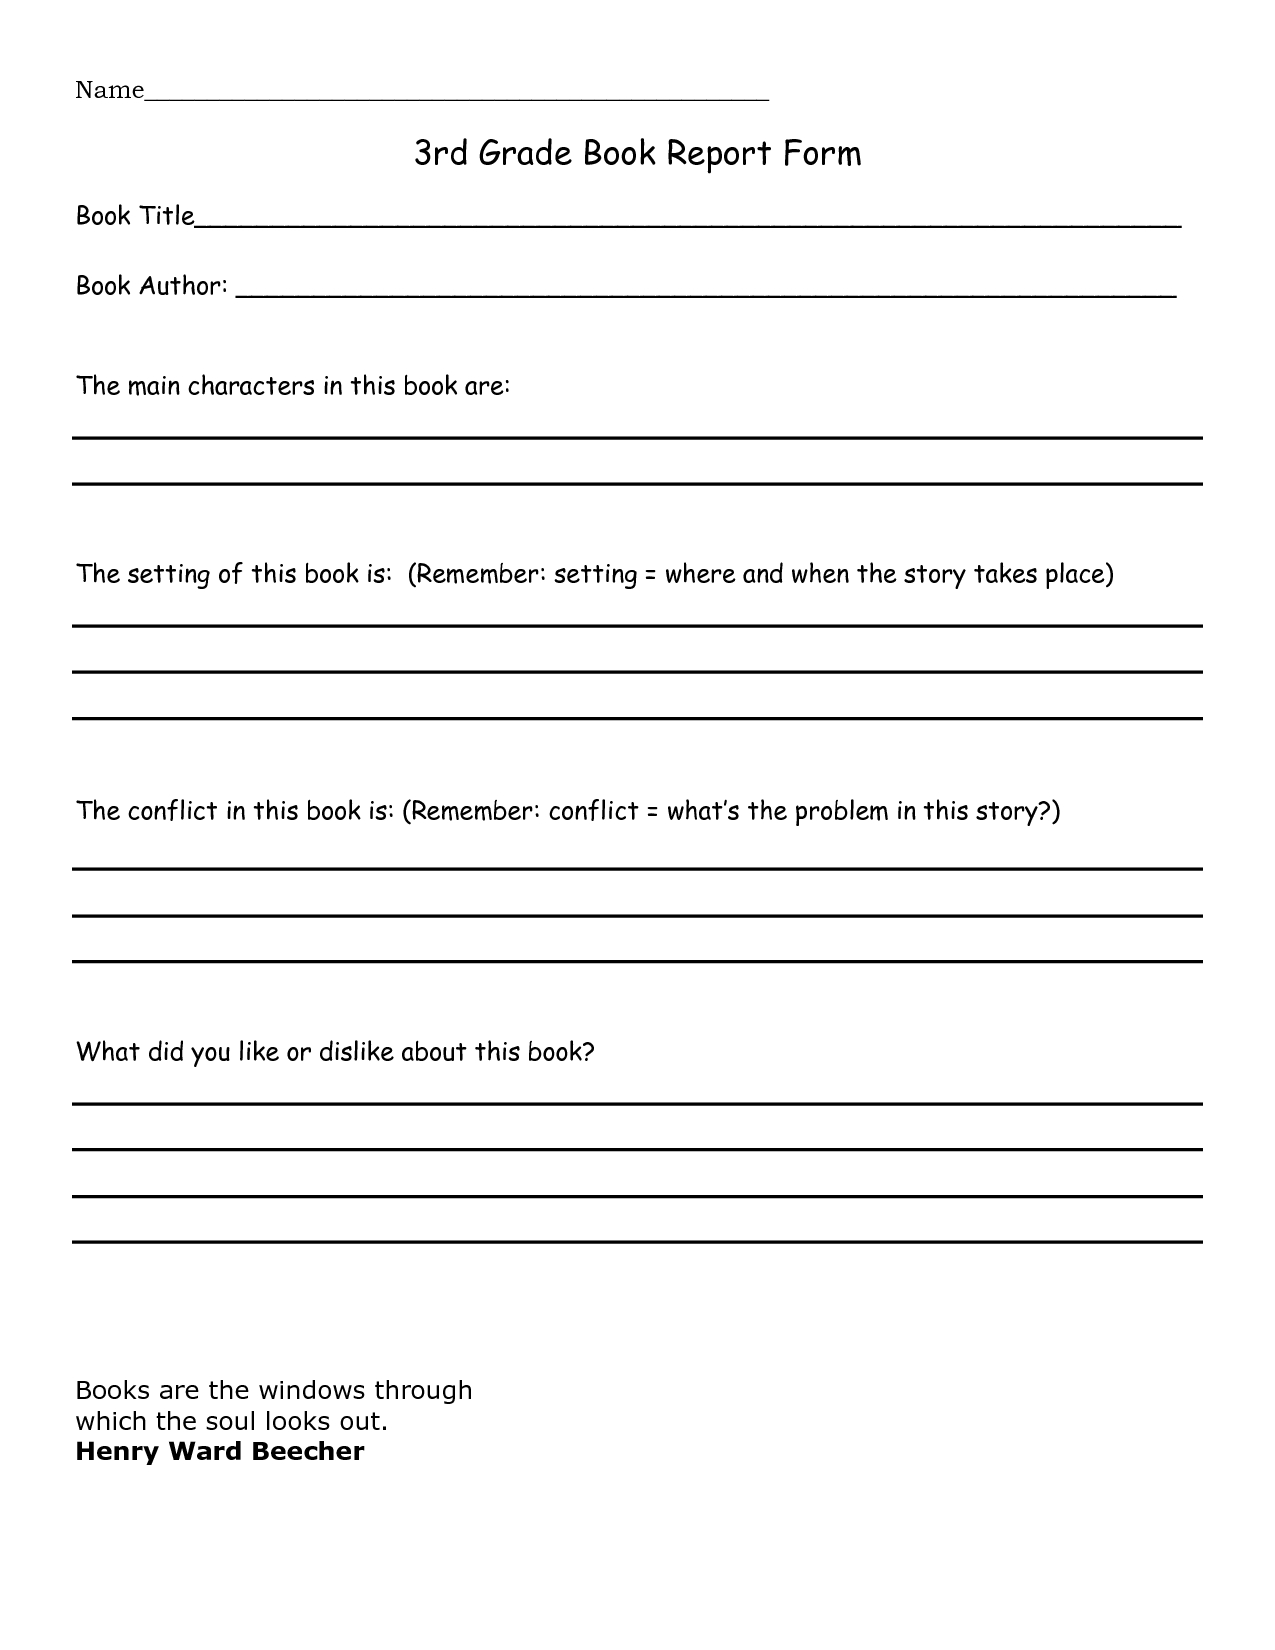 book report 3rd grade template - google search | home education